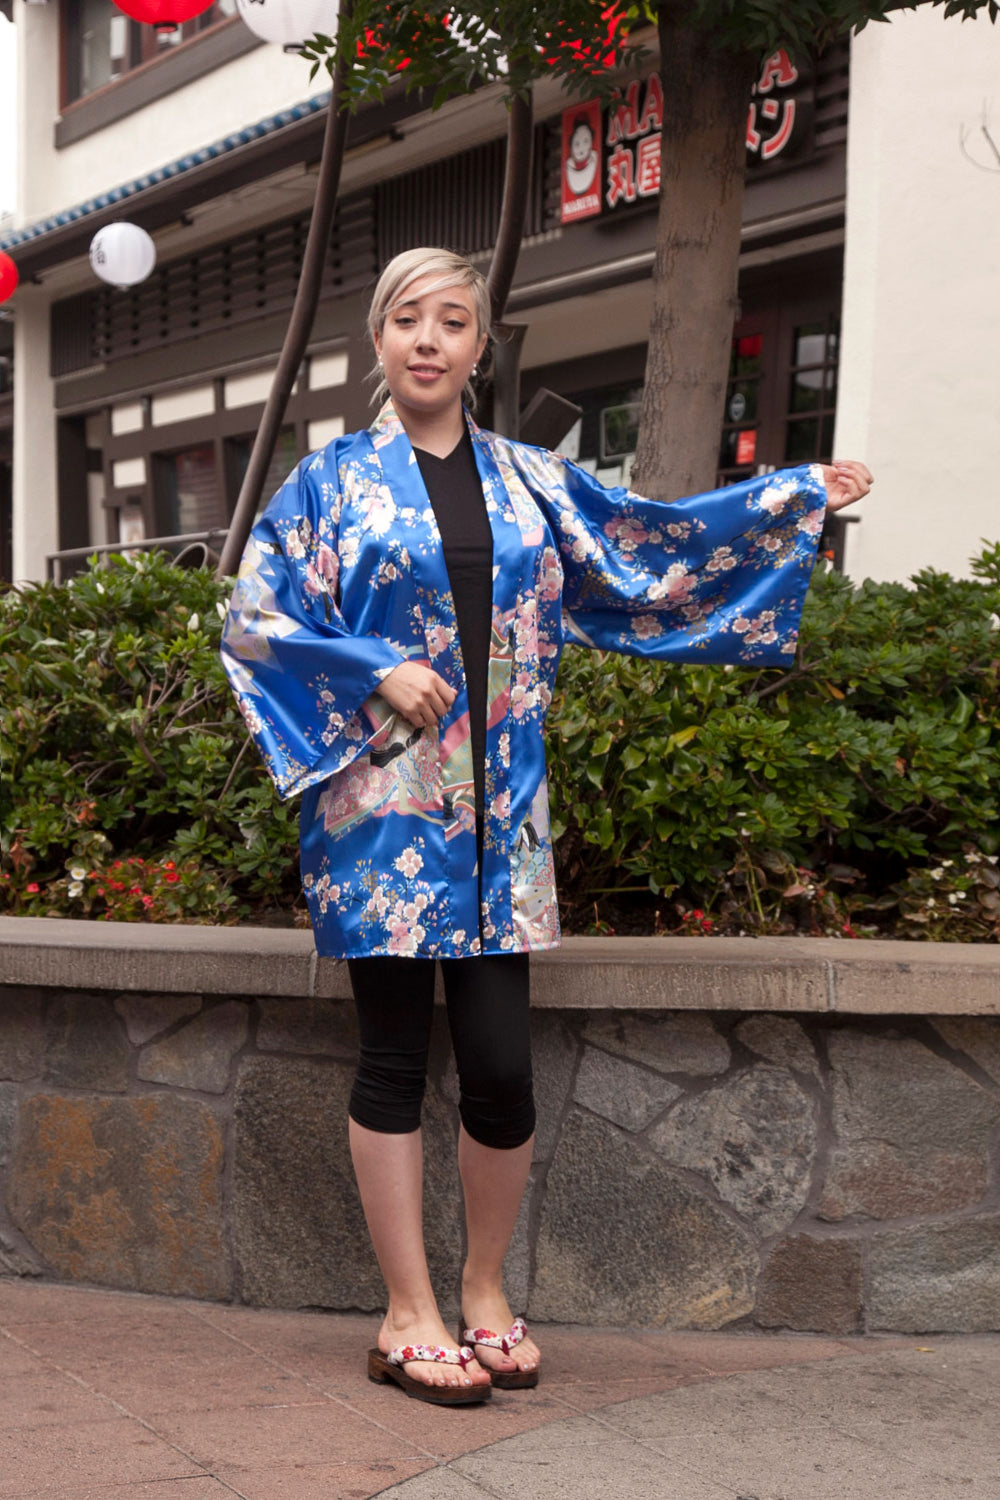 Women's Happi Coat Dynasty in Cherry Blossoms